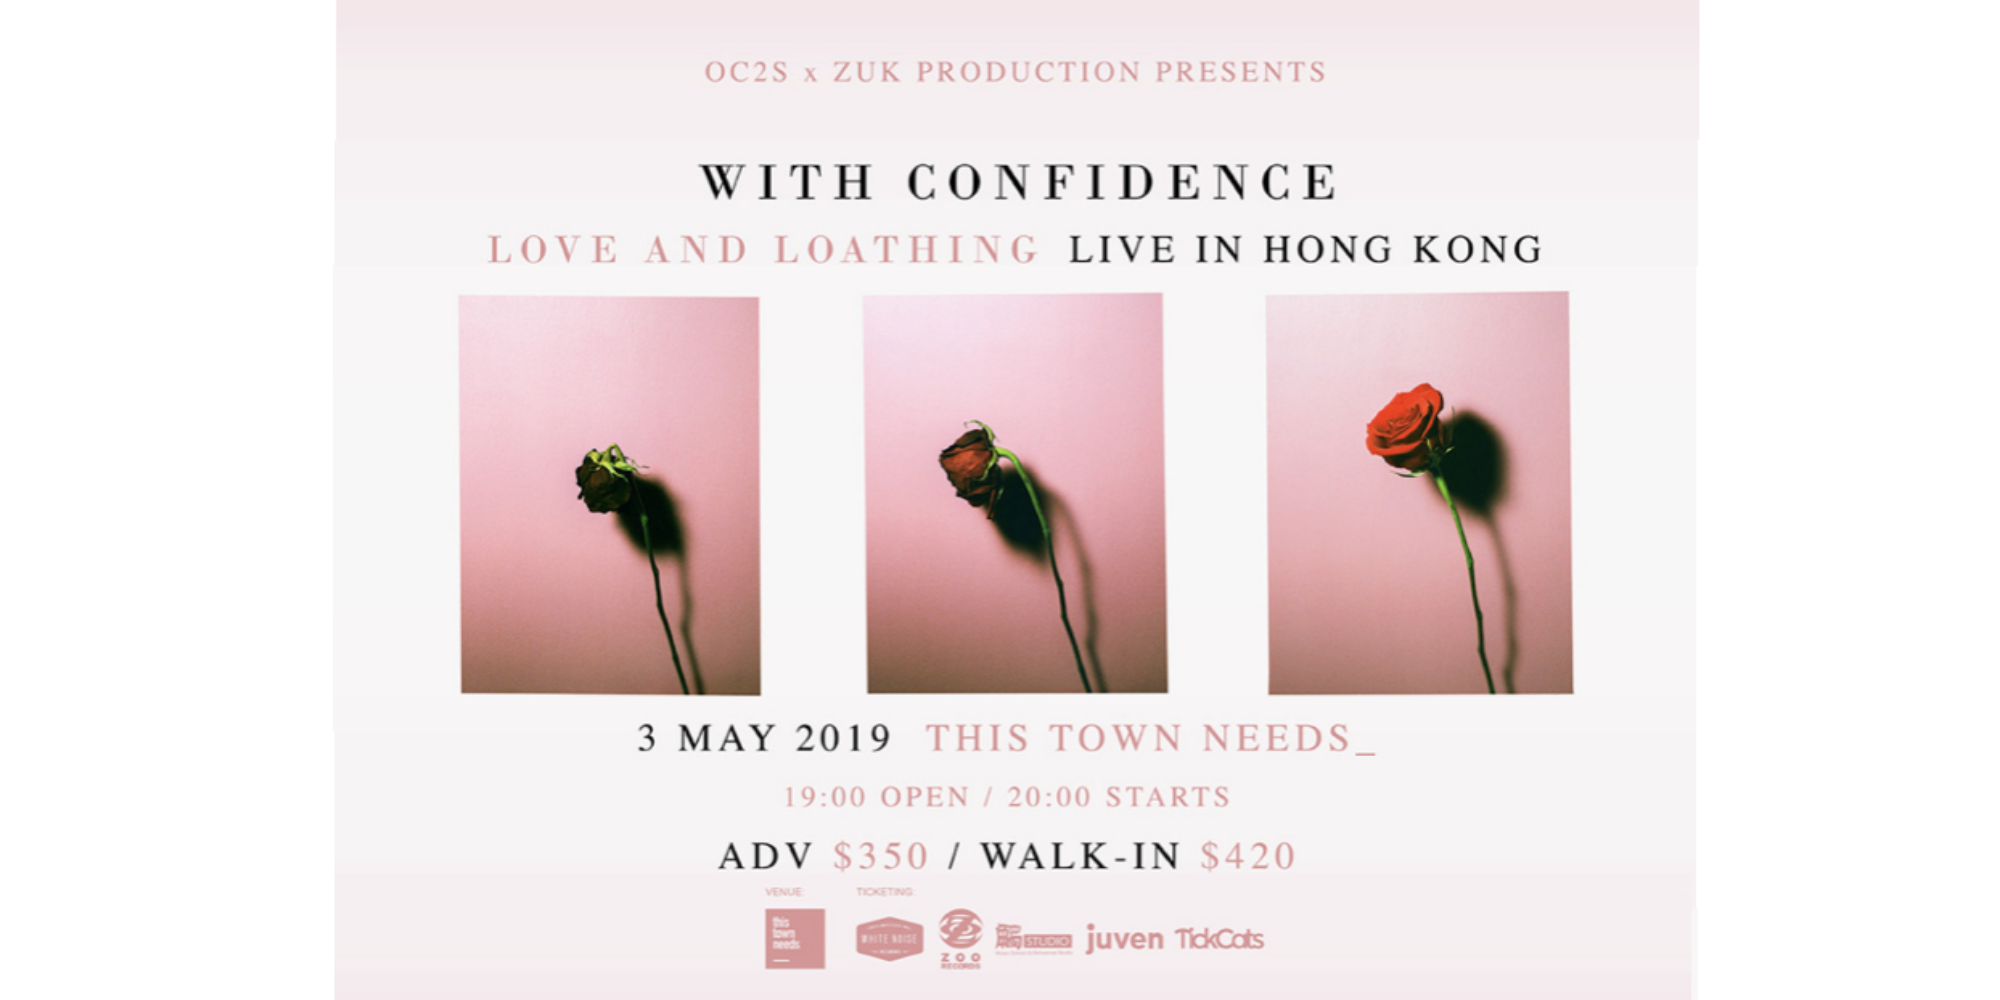 OC2S x Zuk Production Presents: With Confidence - Live in Hong Kong